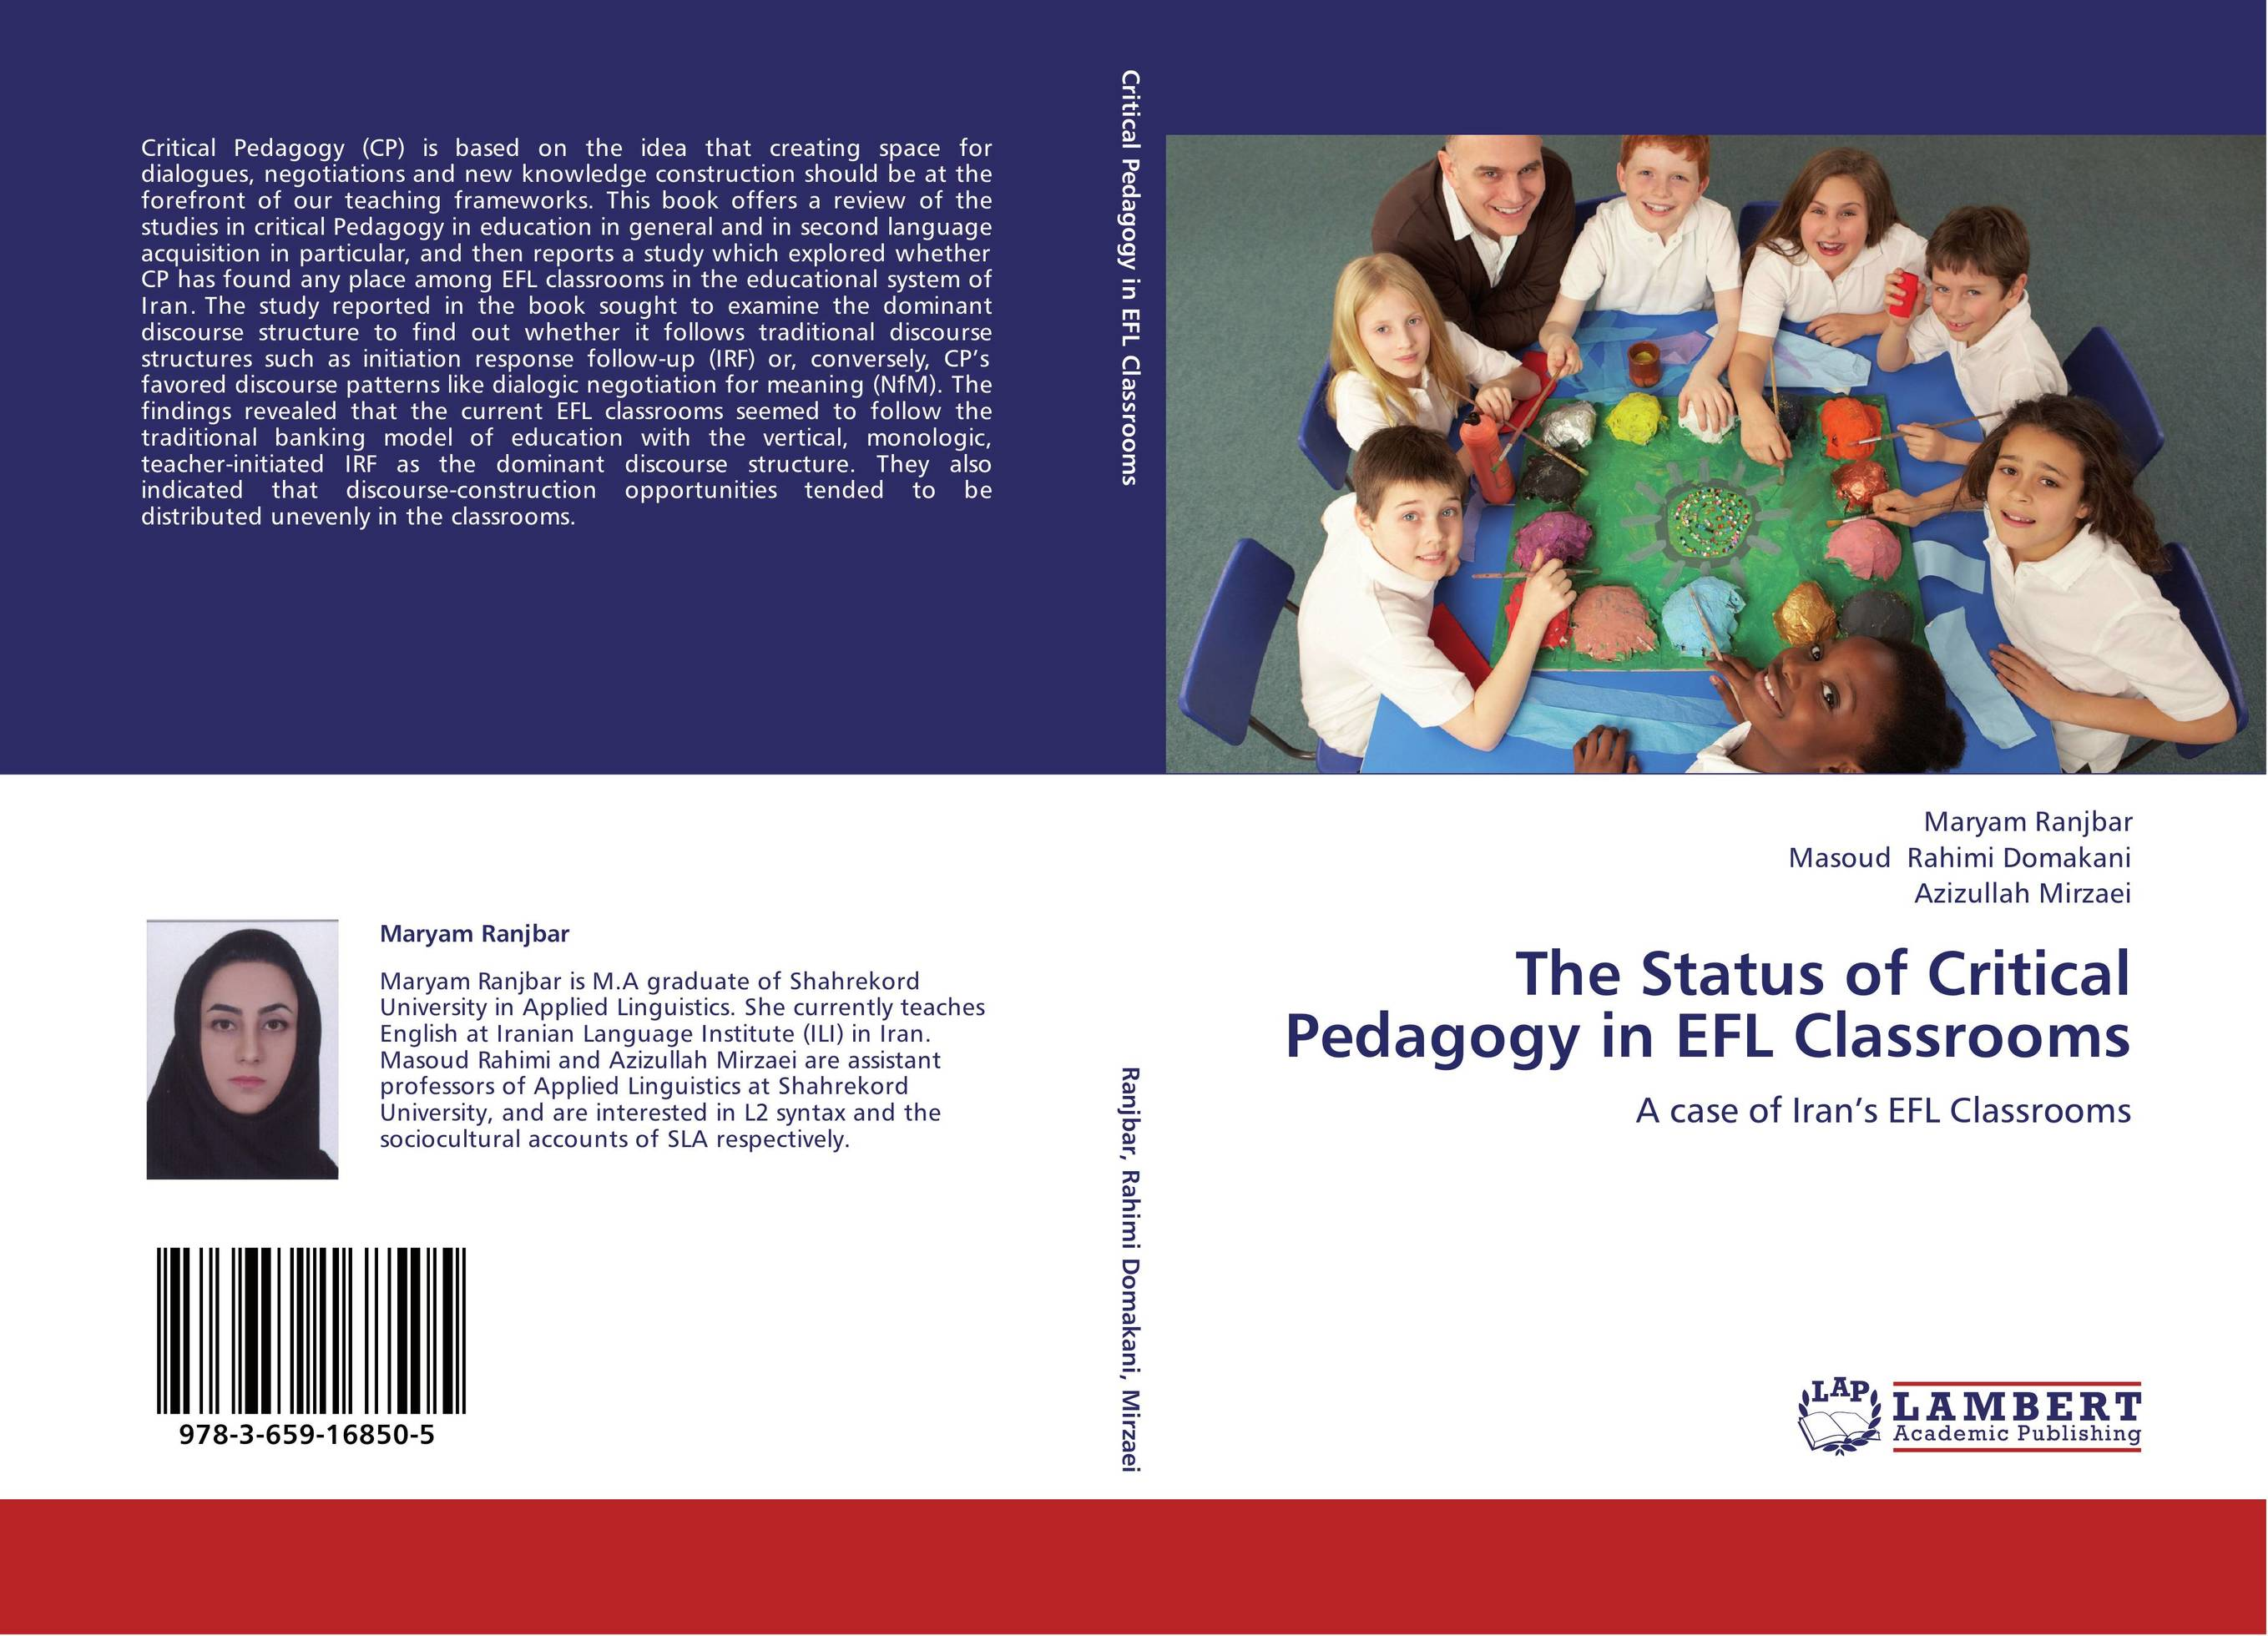 9783659168505 The Status of Critical Pedagogy in EFL Classrooms Maryam Ranjbar